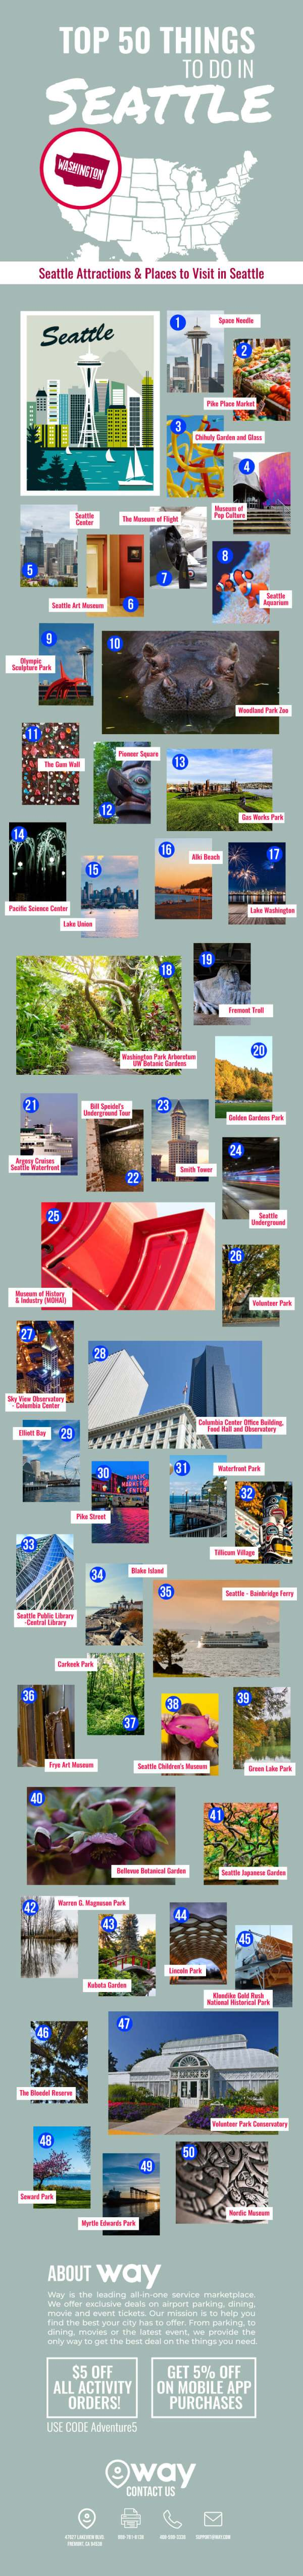 Top-50-Things-to-do-in-Seattle-infographic-lkrllc